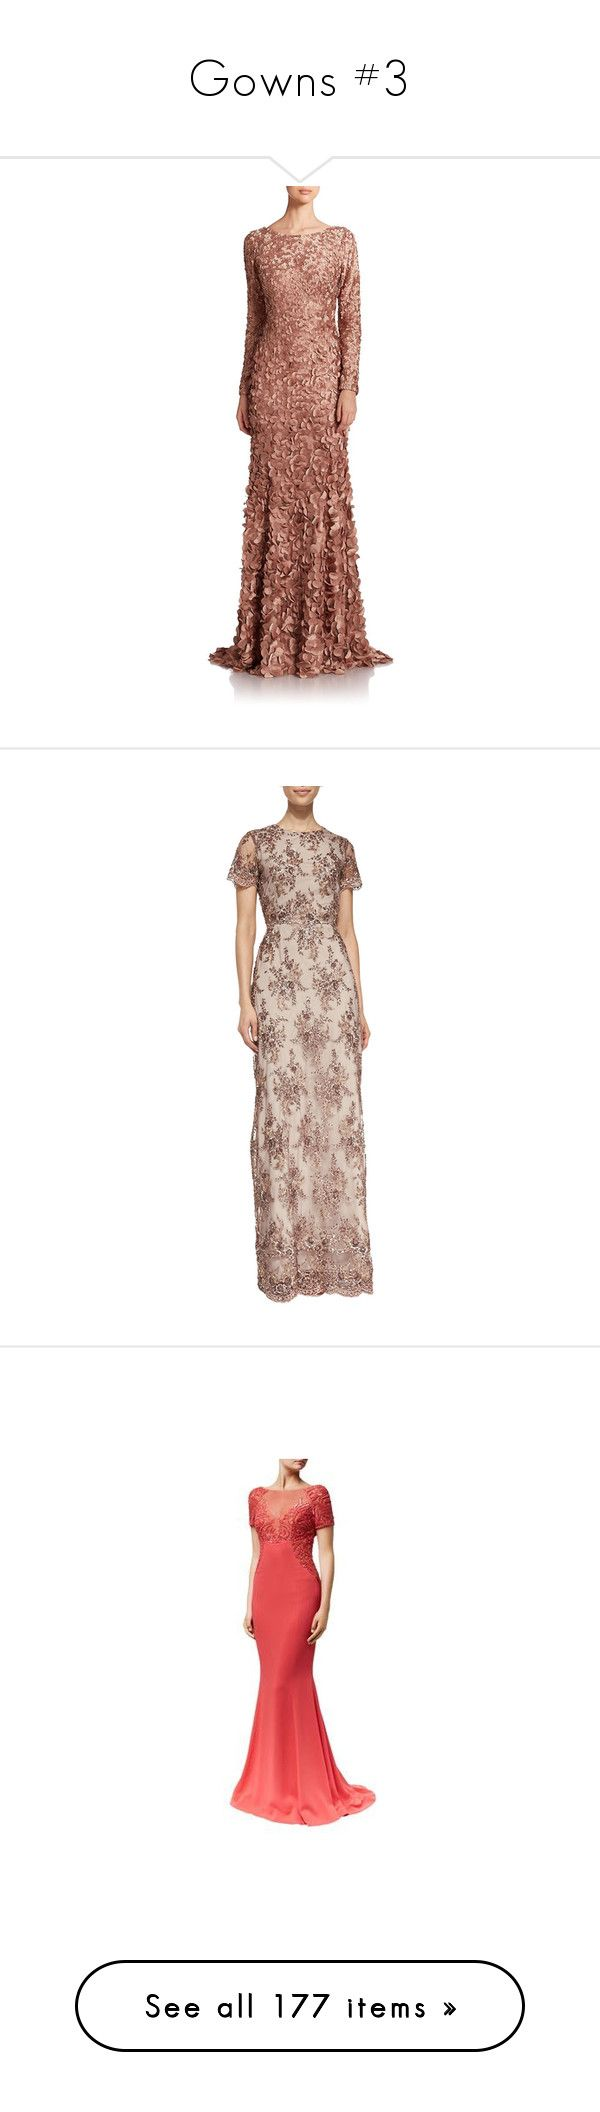 """Gowns #3"" by charlottedebora ❤ liked on Polyvore featuring dresses, gowns, gown, apparel & accessories, tawny, satin evening gown, theia gowns, satin dress, boatneck dress and brown dress"